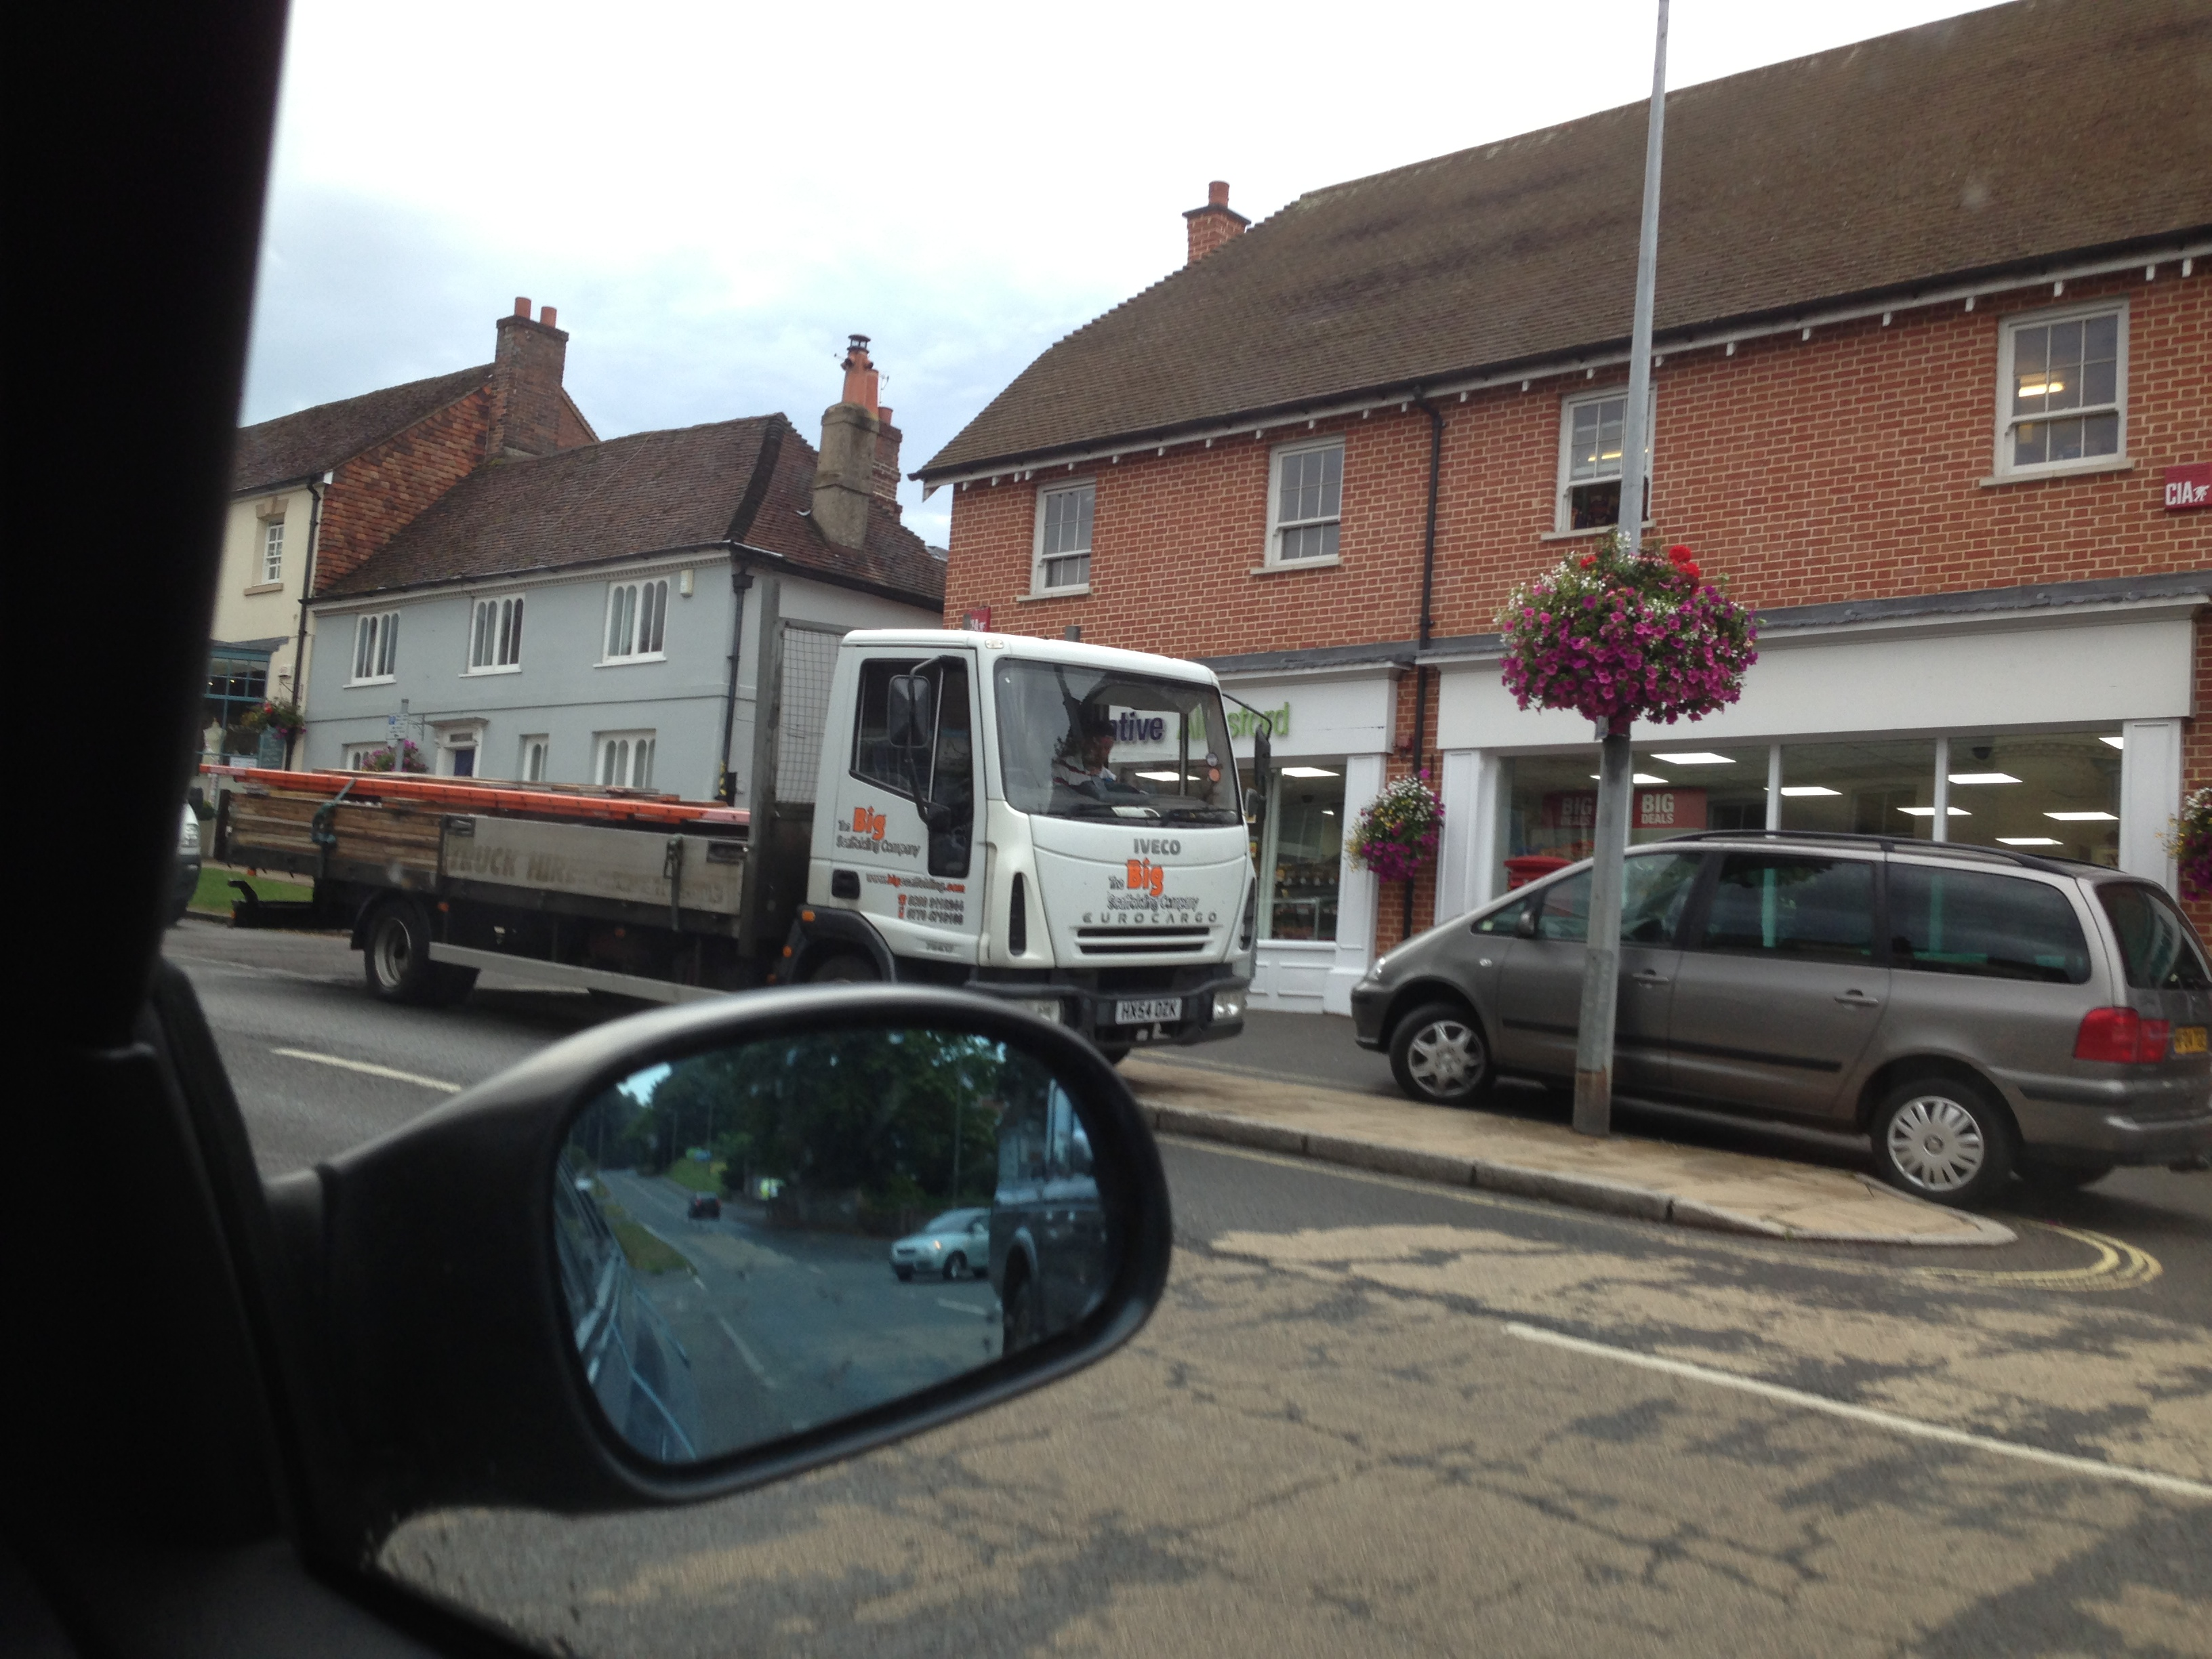 The Big Scaffolding Company parked illegally outside the Coop Alresford